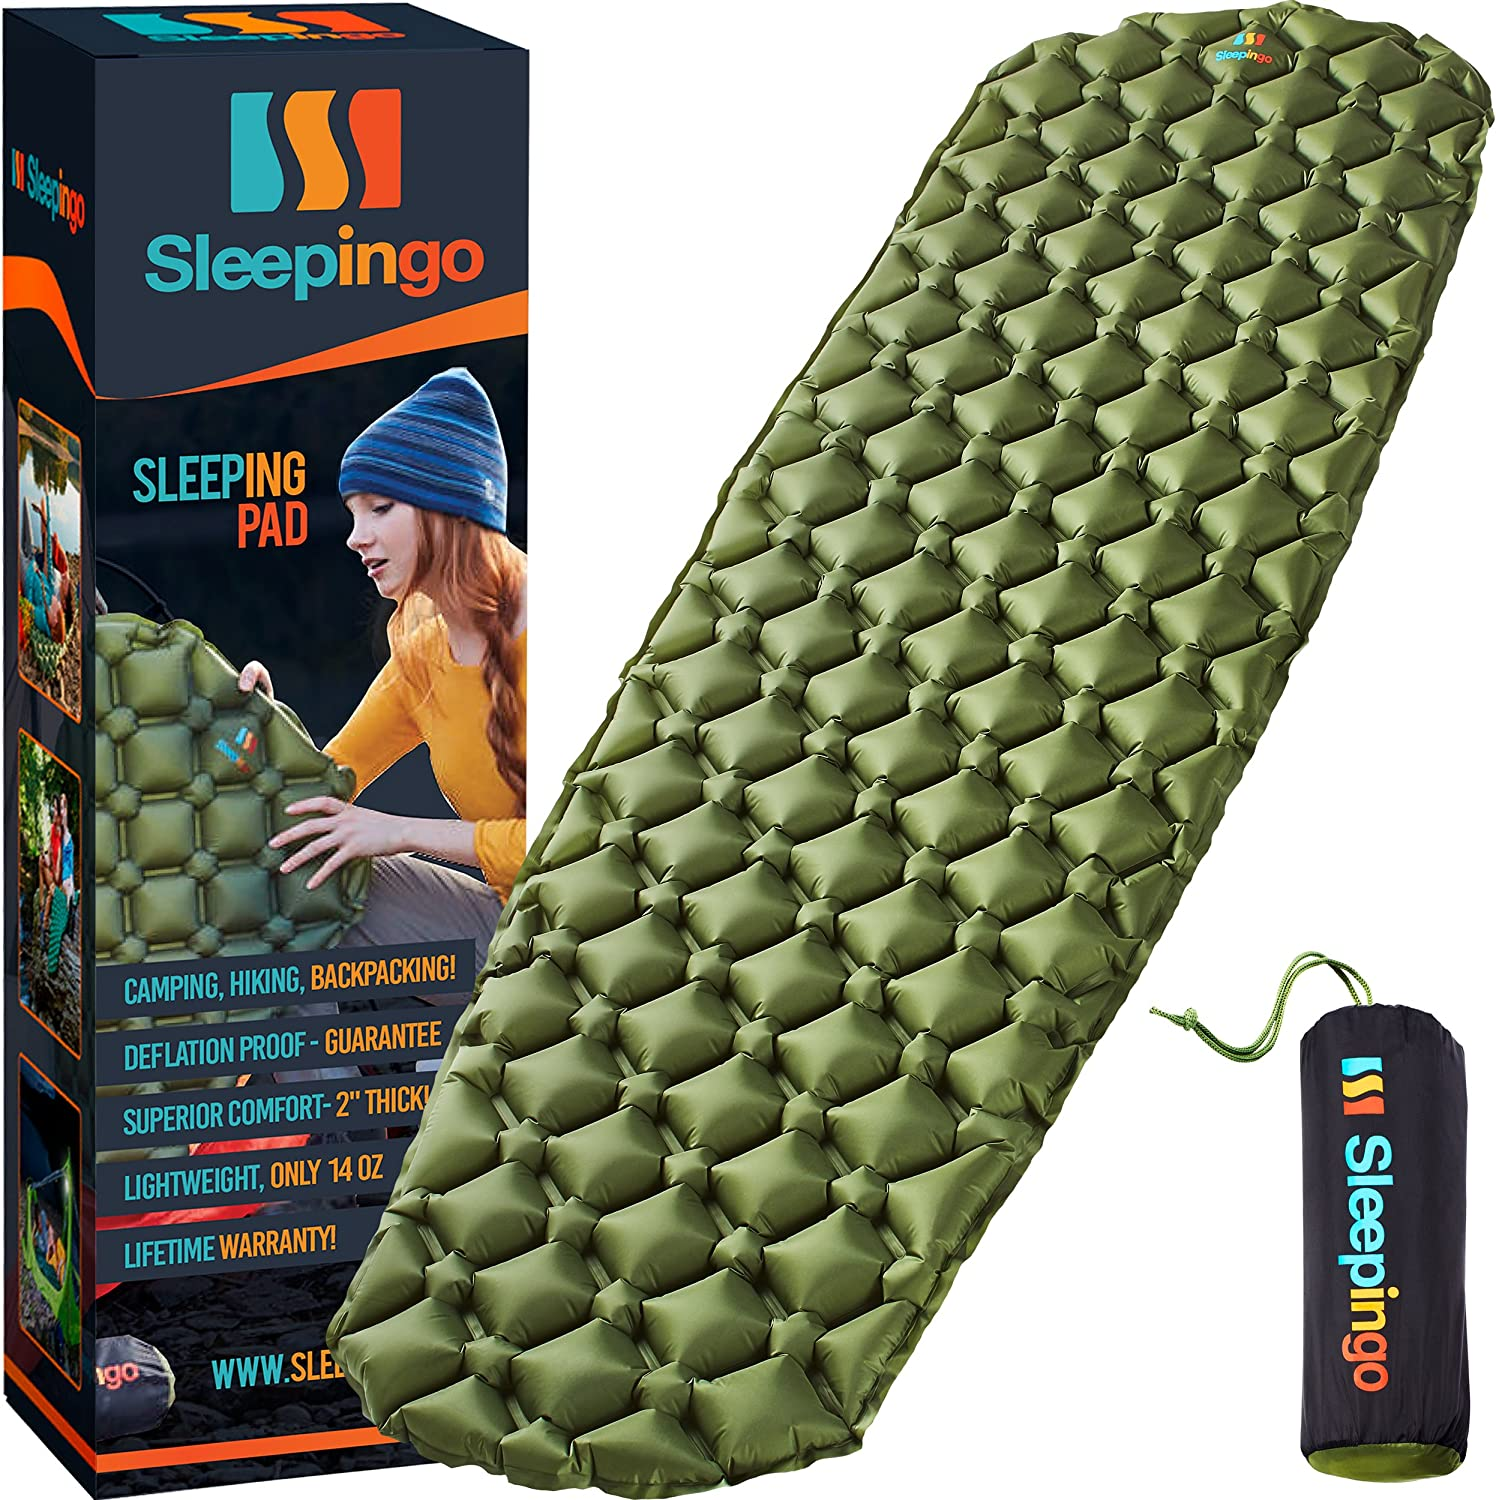 Sleepingo Camping Sleeping Pad - Best Sleeping Pads for Backpacking